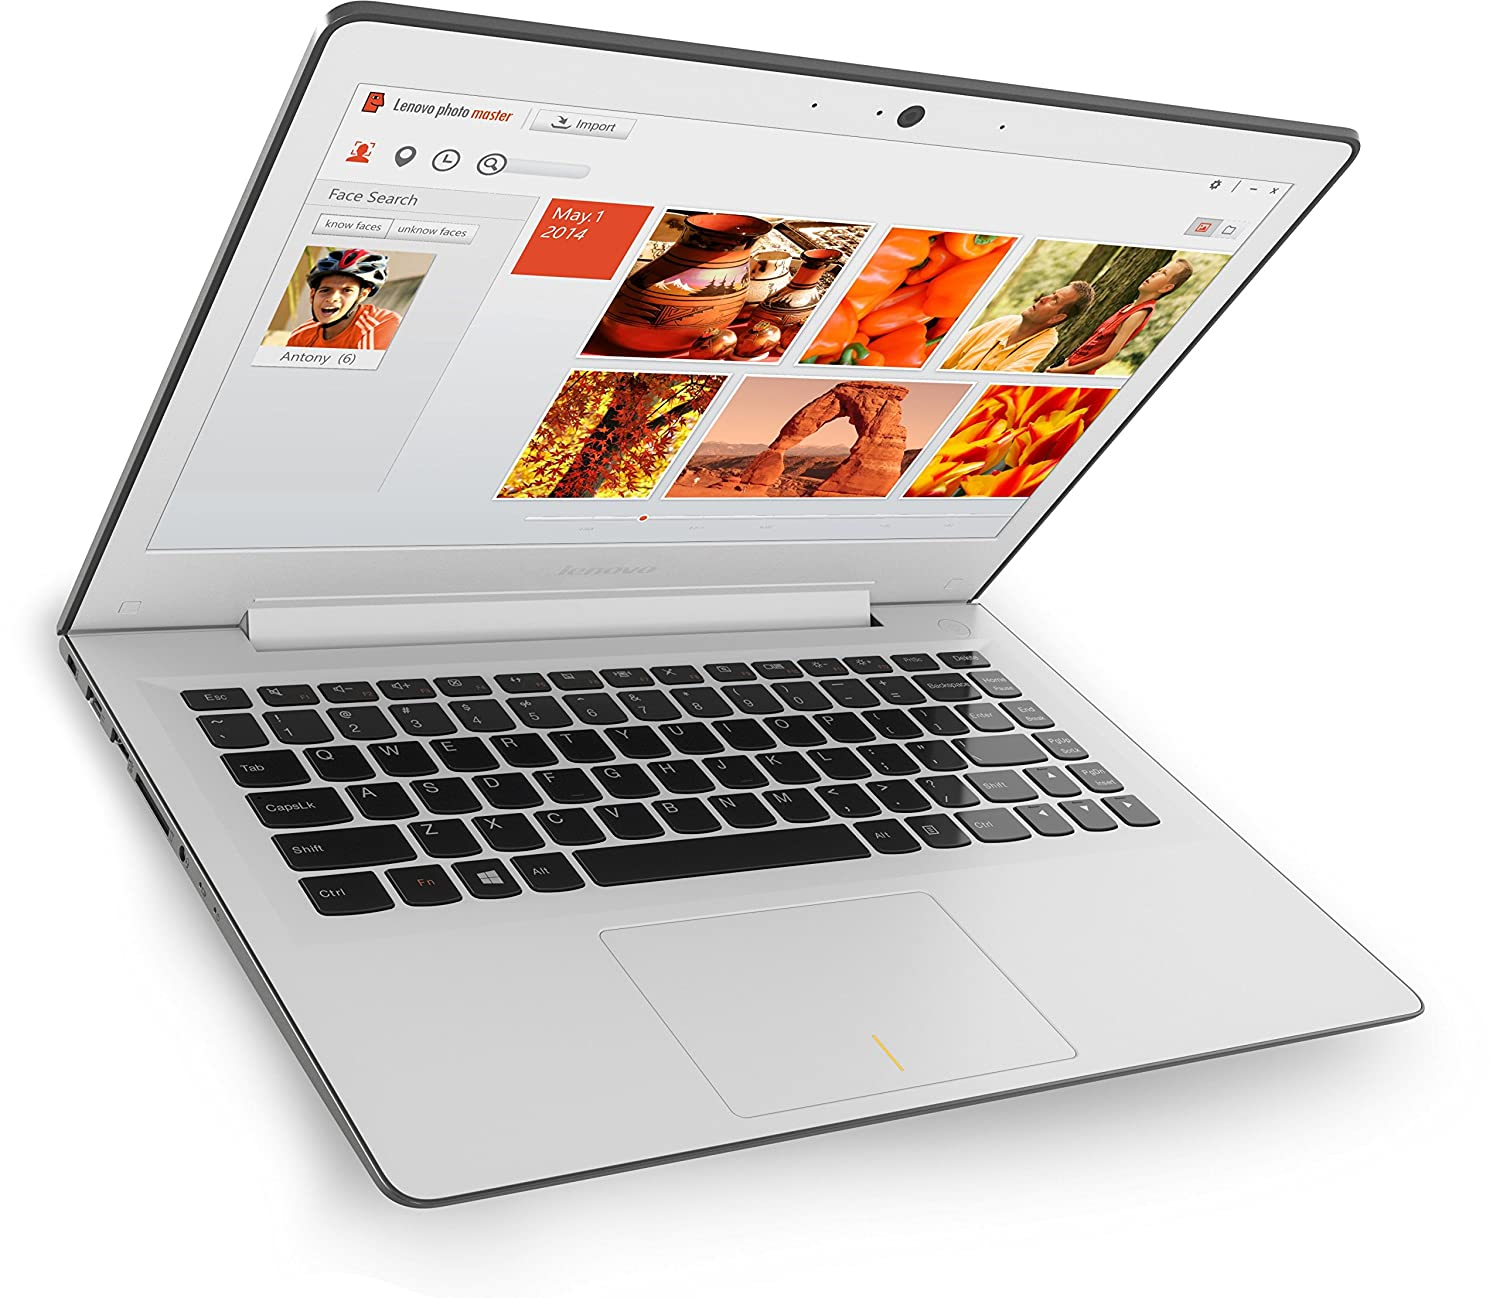 Lenovo U31-70 - Portátil (13,3 Zoll Full HD IPS Matt) Slim Ultrabook (Intel Core i3-5010U, 2,1GHz, 4GB RAM, Hybrid 500GB + 8 GB SSHD, Intel HD Grafik 5500, ...